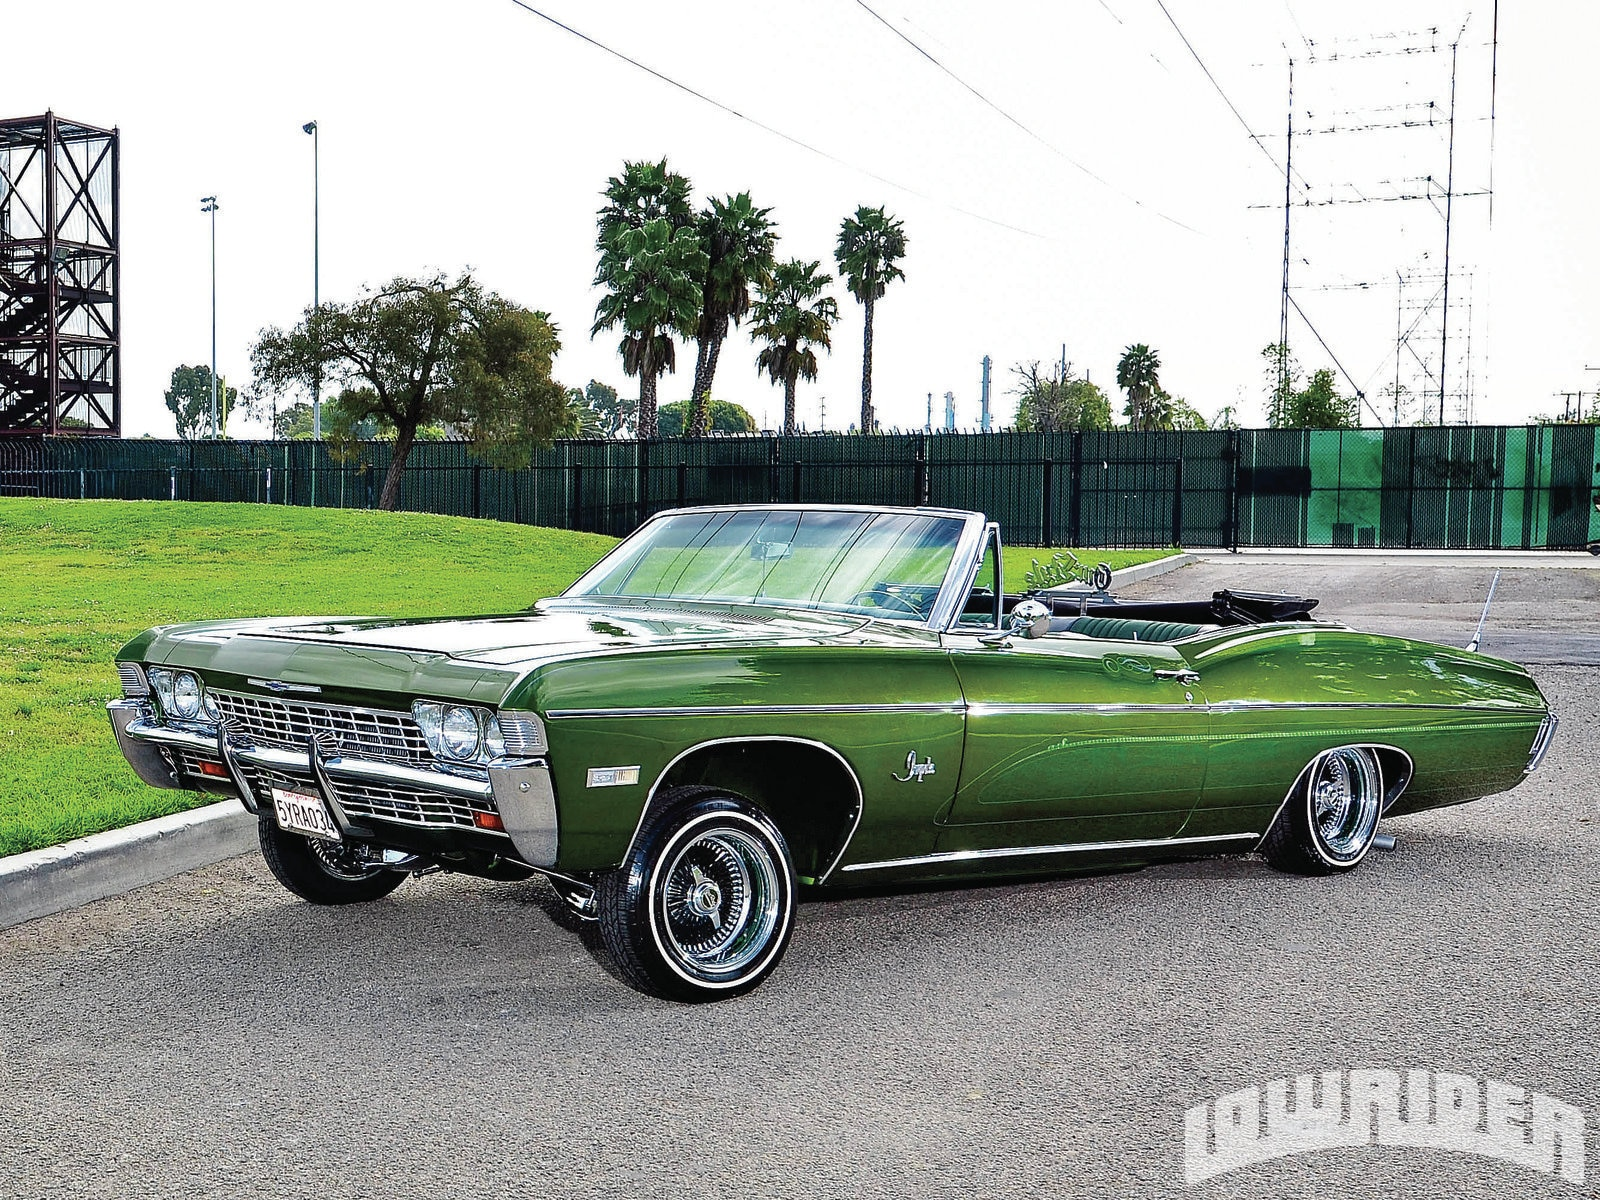 1968 Chevrolet Impala Convertible Dirty Money Green